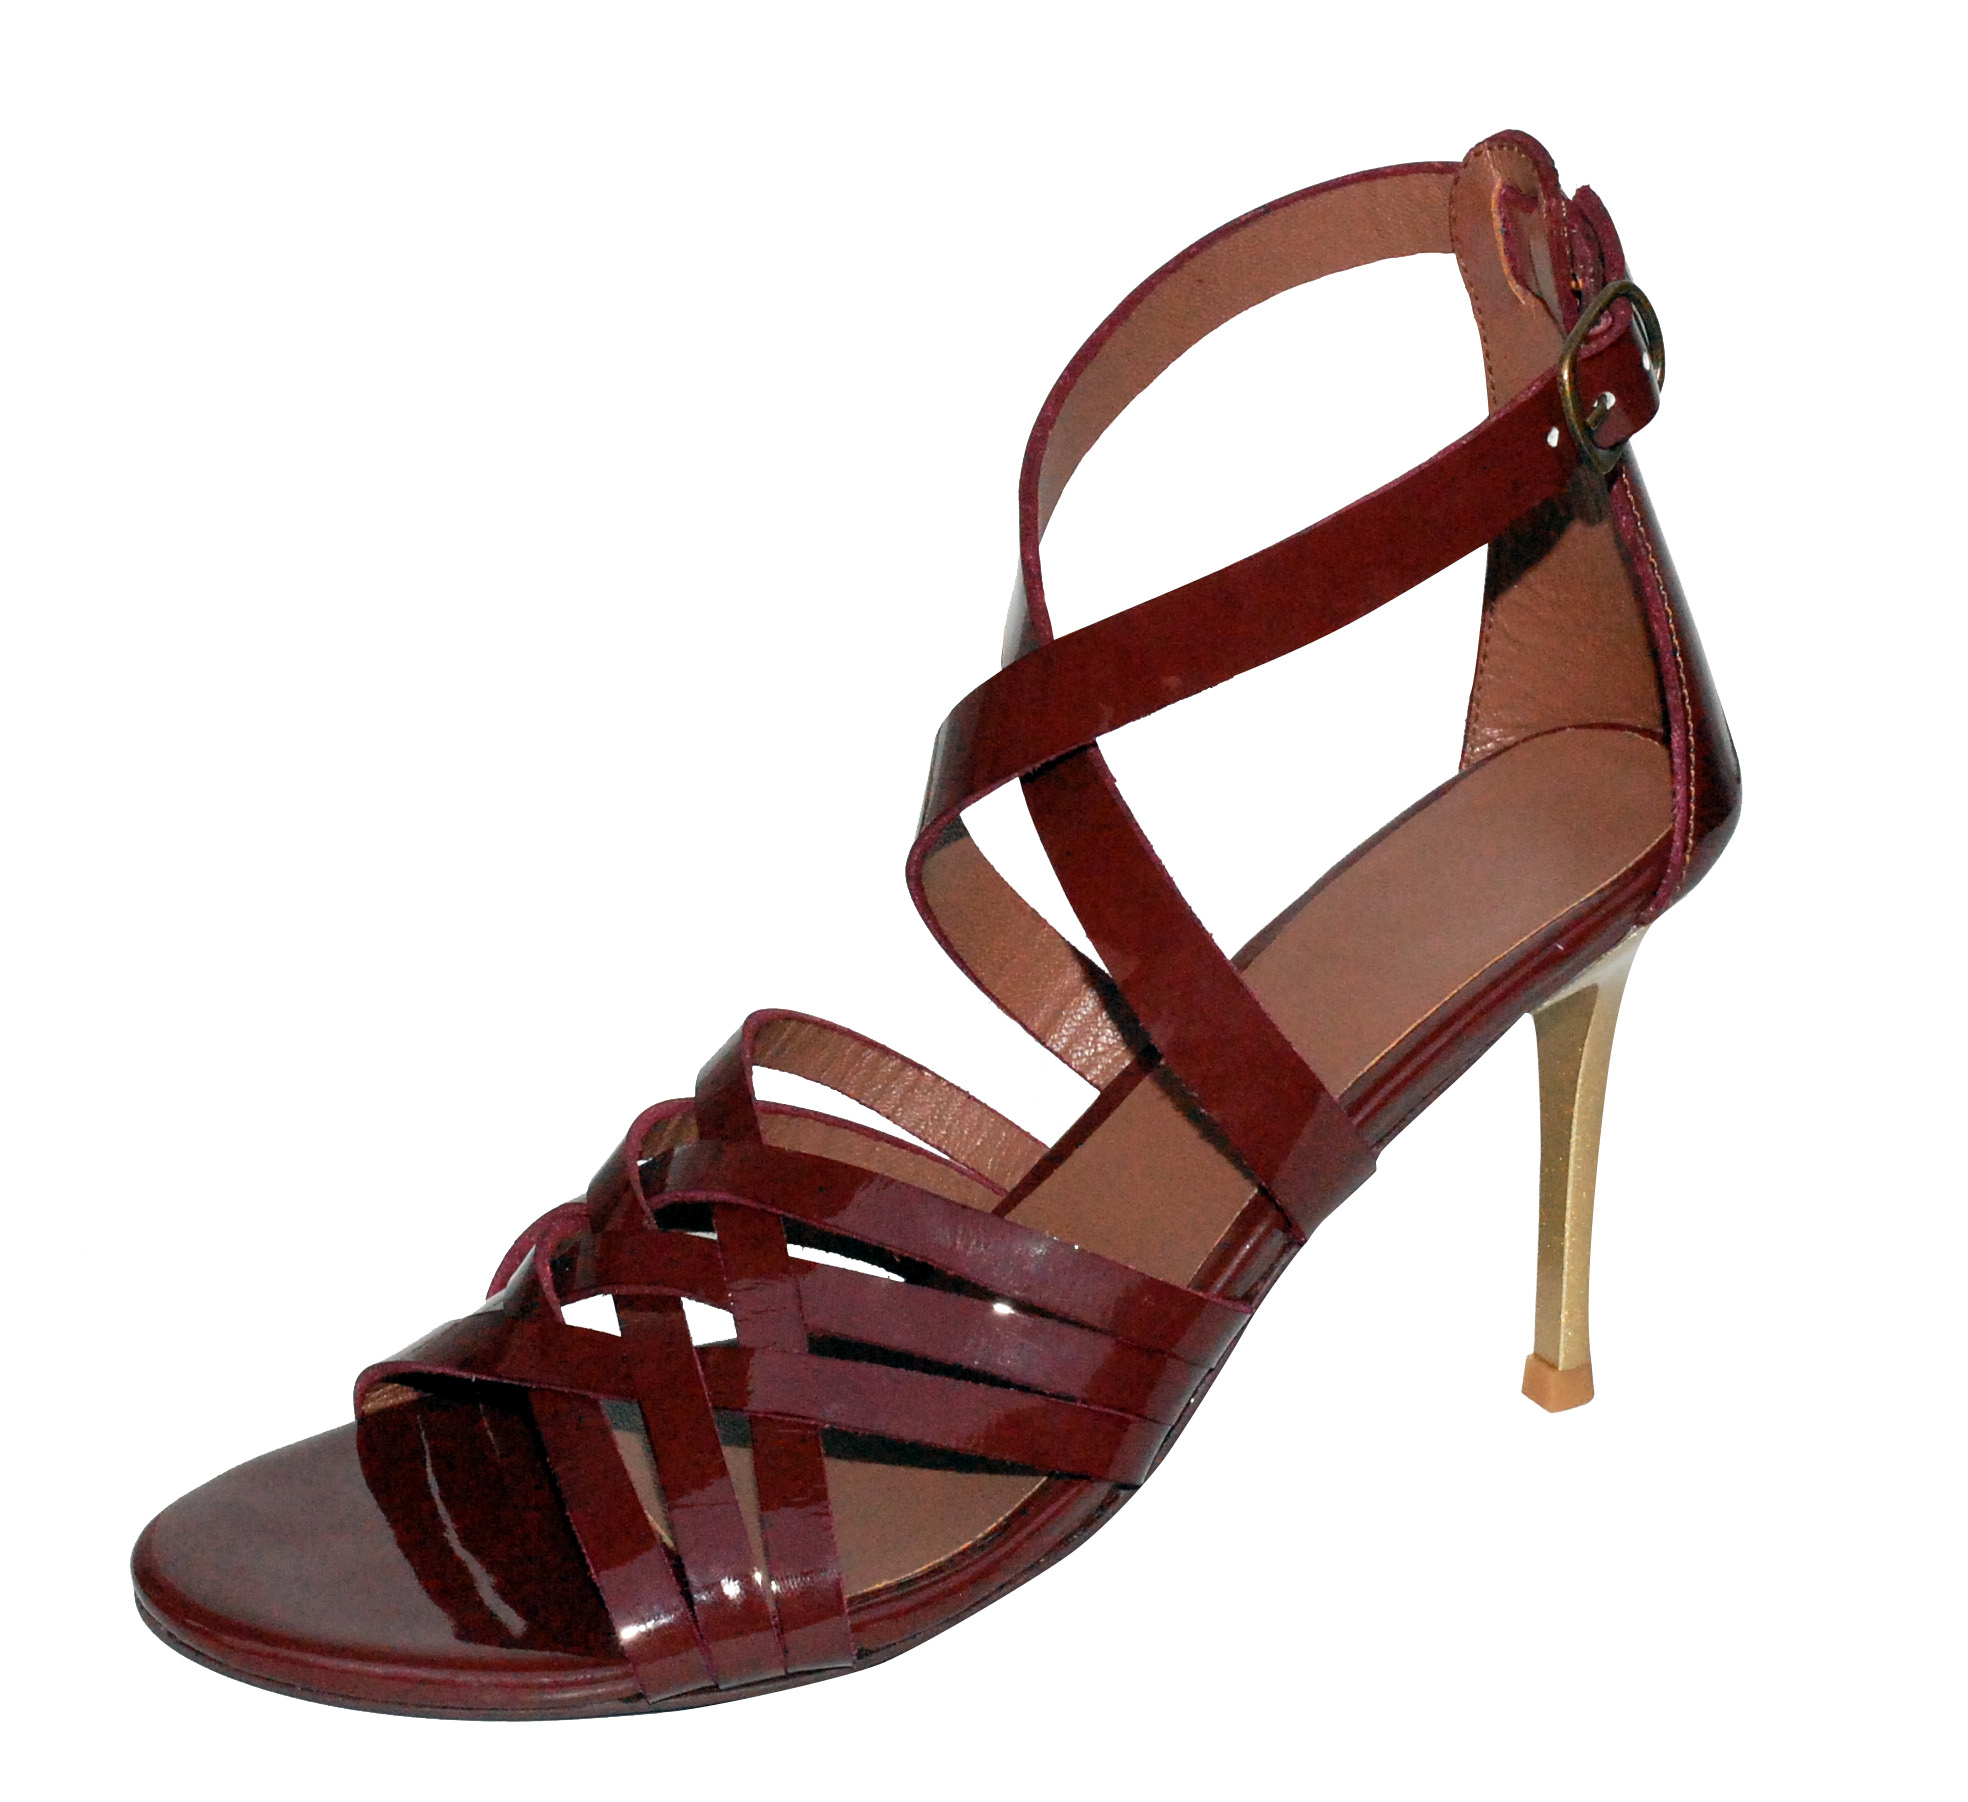 Crisscross weaved leather strappy stilletto